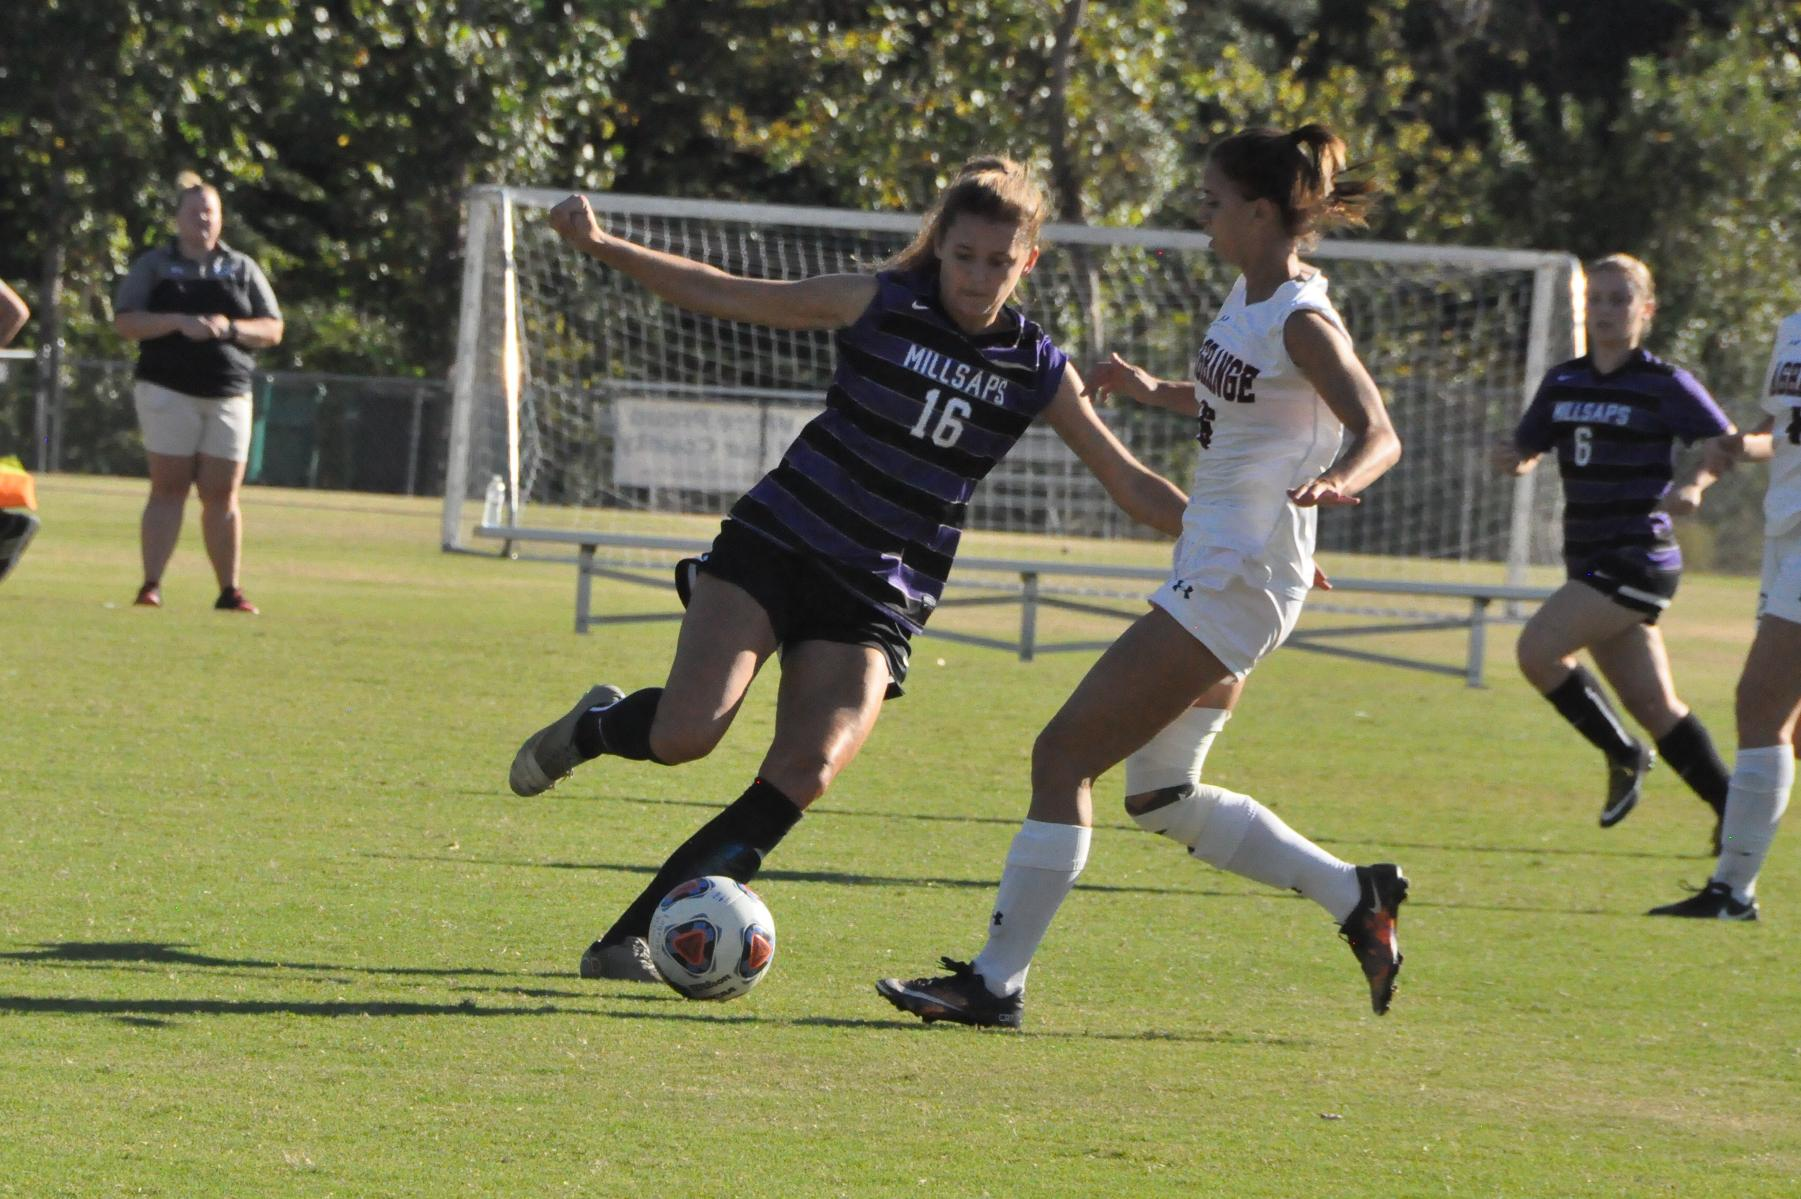 2016-17 Review/Women's Soccer: Panthers get goals from three players in win against Millsaps